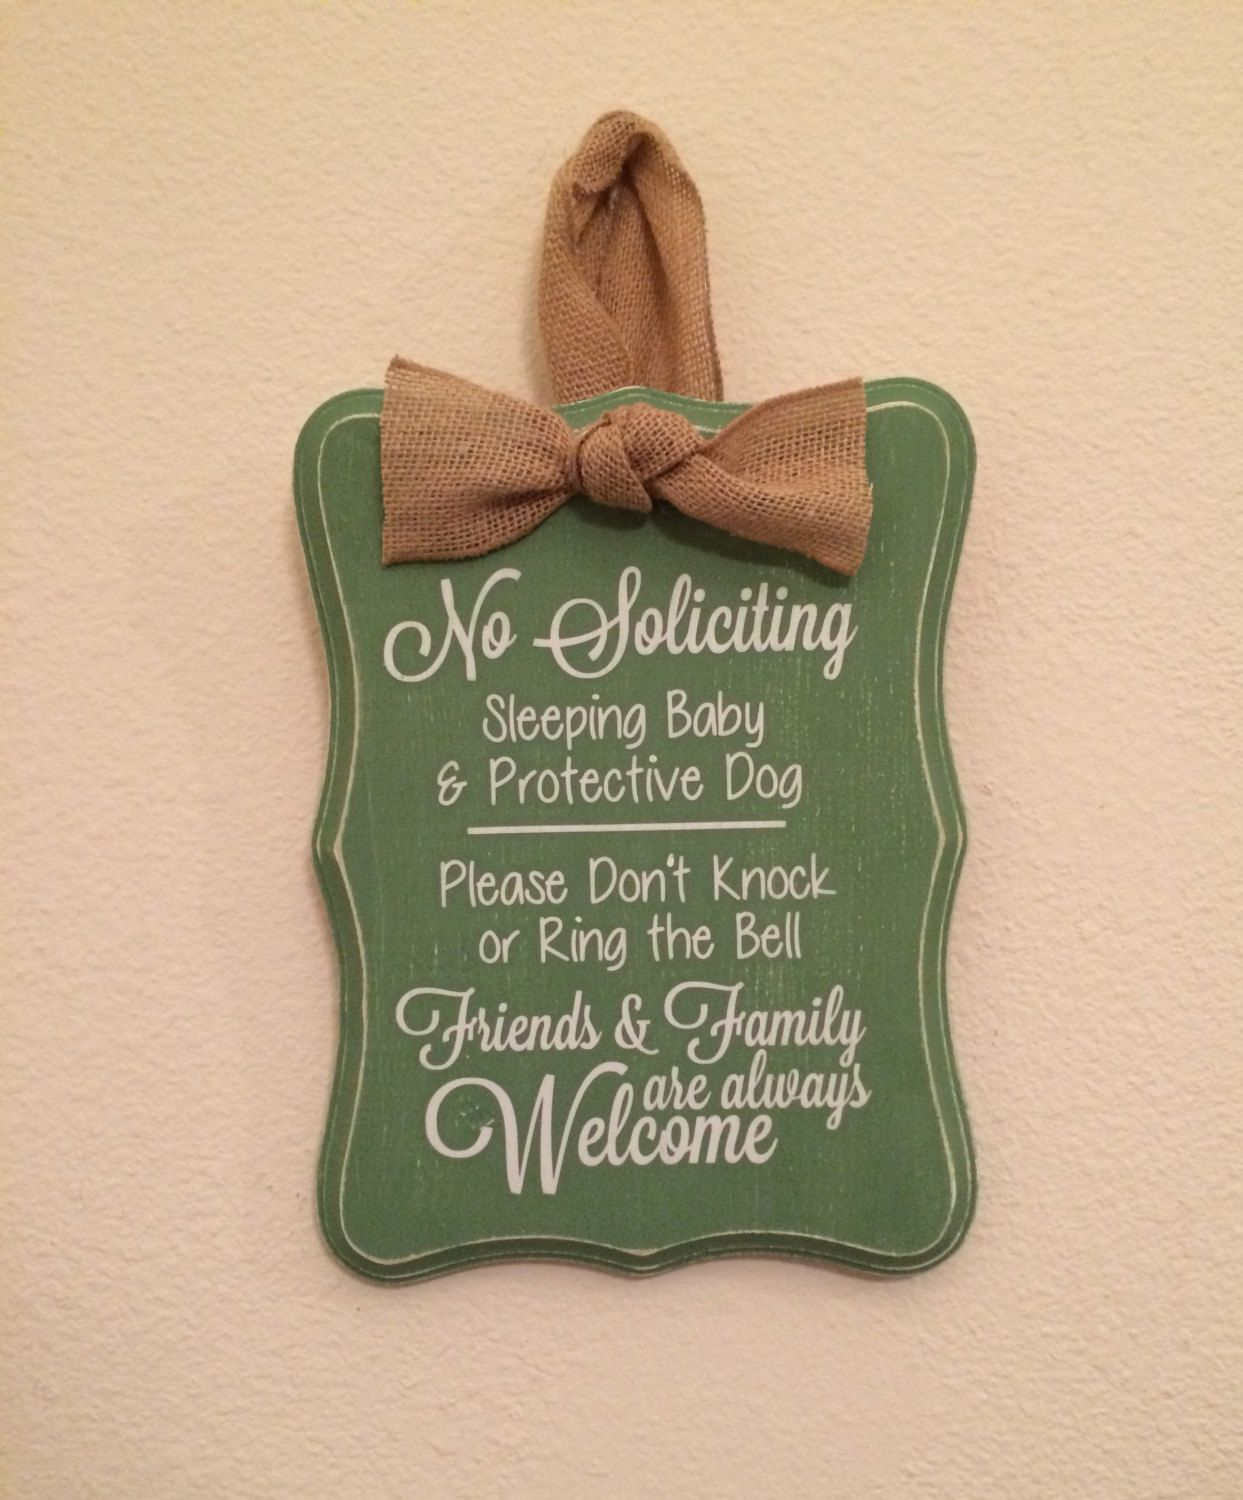 Hand Painted Distressed No Soliciting Sign Baby Sleeping by MeganRileyDesigns on Etsy https://www.etsy.com/listing/214614601/hand-painted-distressed-no-soliciting